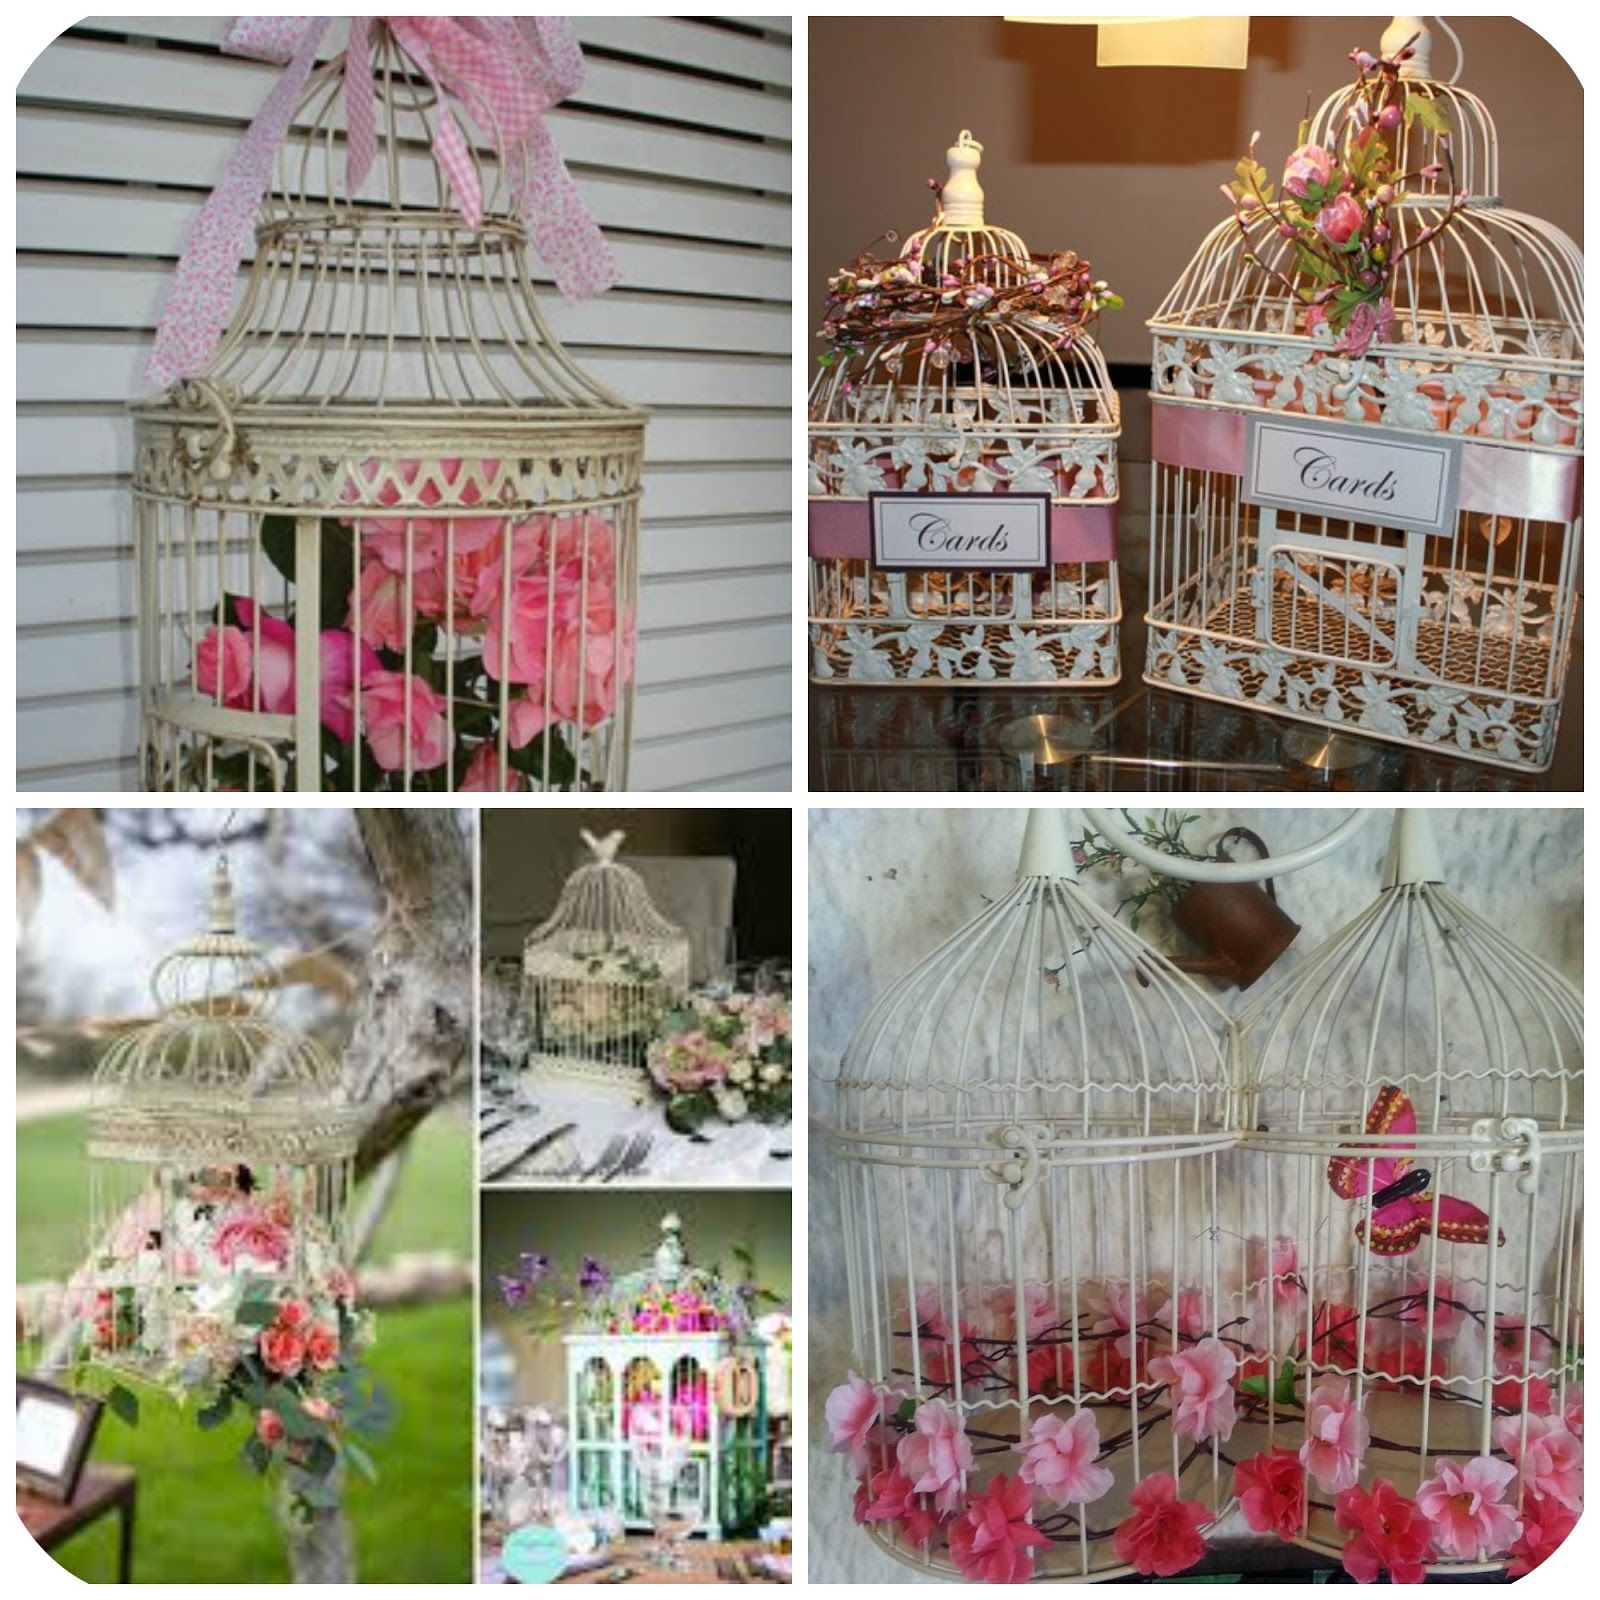 Jaulas decoradas con flores buscar con google enjaulados pinterest vintage and decorating - Jaulas decoradas vintage ...